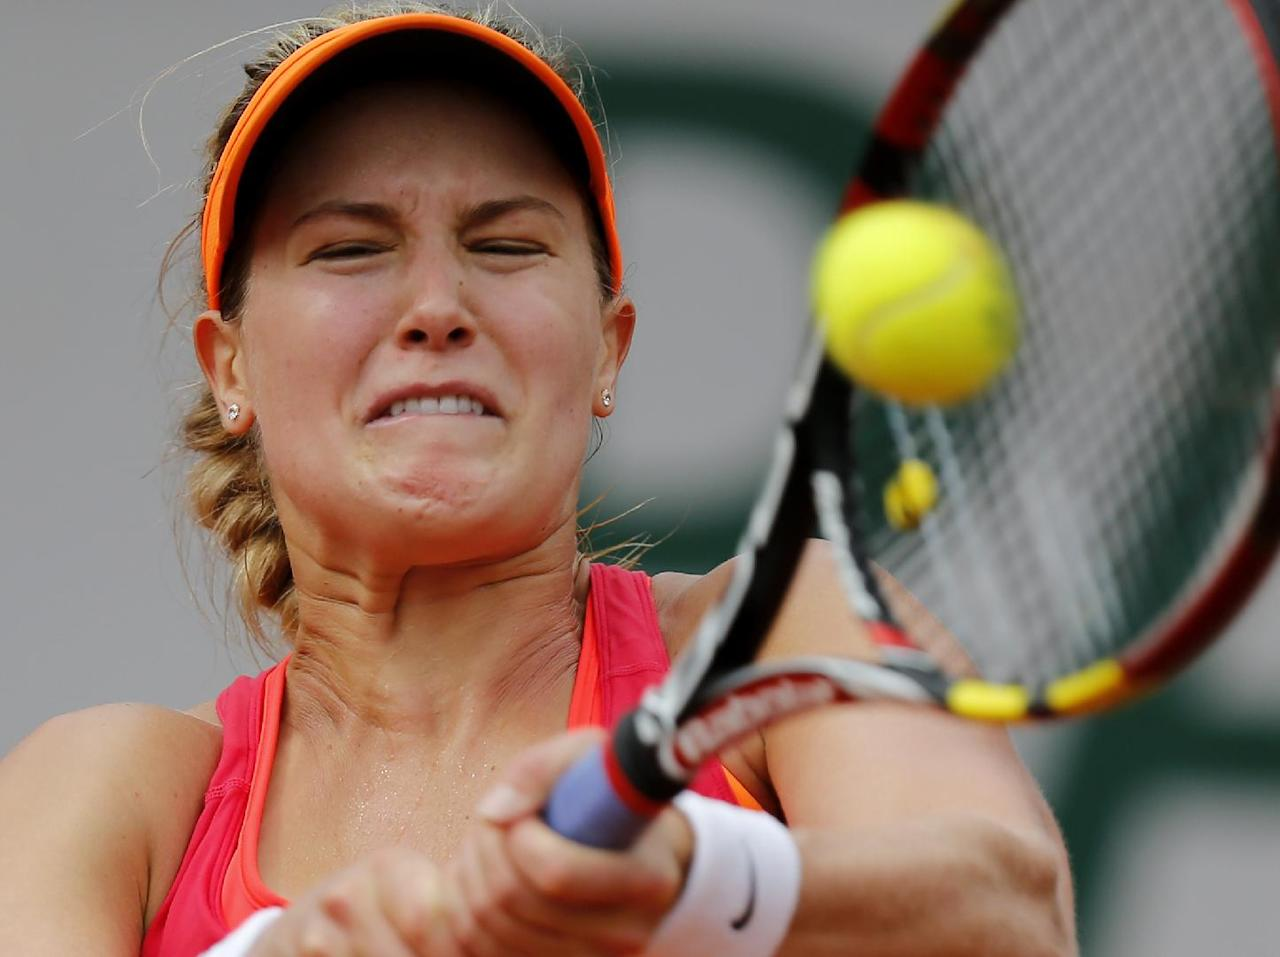 Canada's Eugenie Bouchard returns the ball to Spain's Carla Suarez Navarro during their quarterfinal match of the French Open tennis tournament at the Roland Garros stadium, in Paris, France, Tuesday, June 3, 2014. Bouchard won 7-6, 2-6, 7-5. (AP Photo/David Vincent)